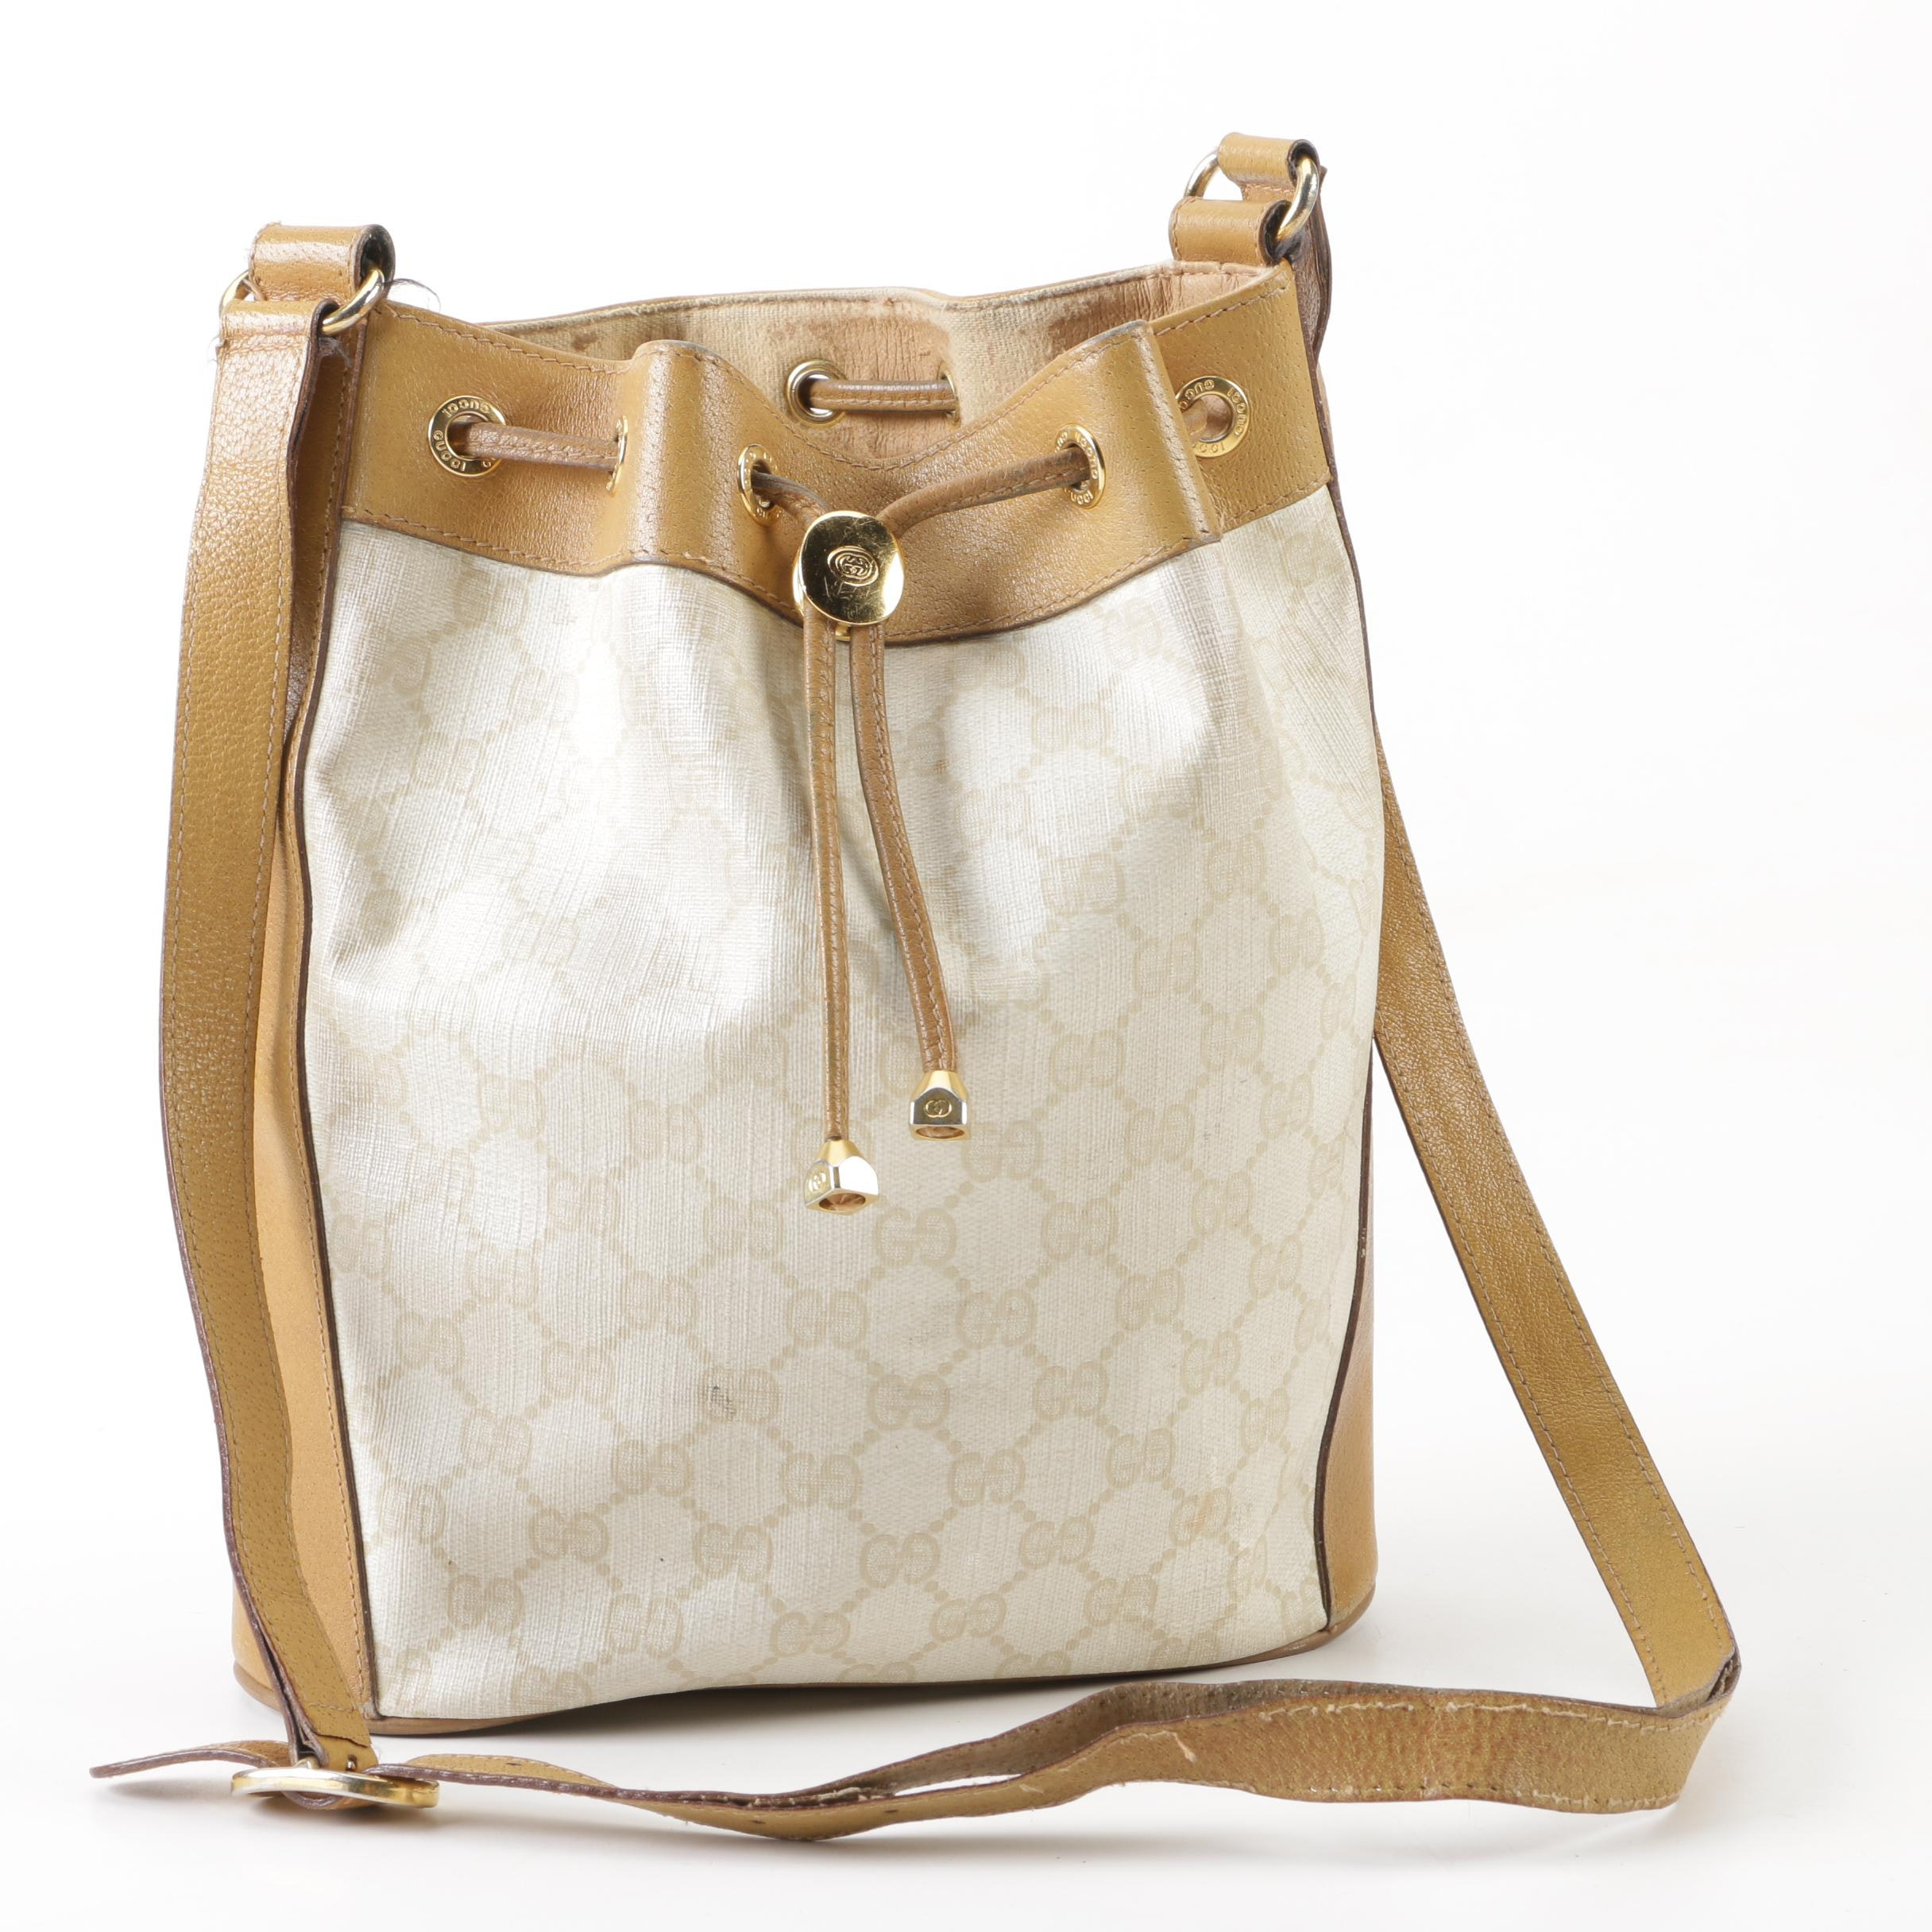 Gucci Accessory Collection Monogram Coated Canvas Bucket Bag with Leather Trim